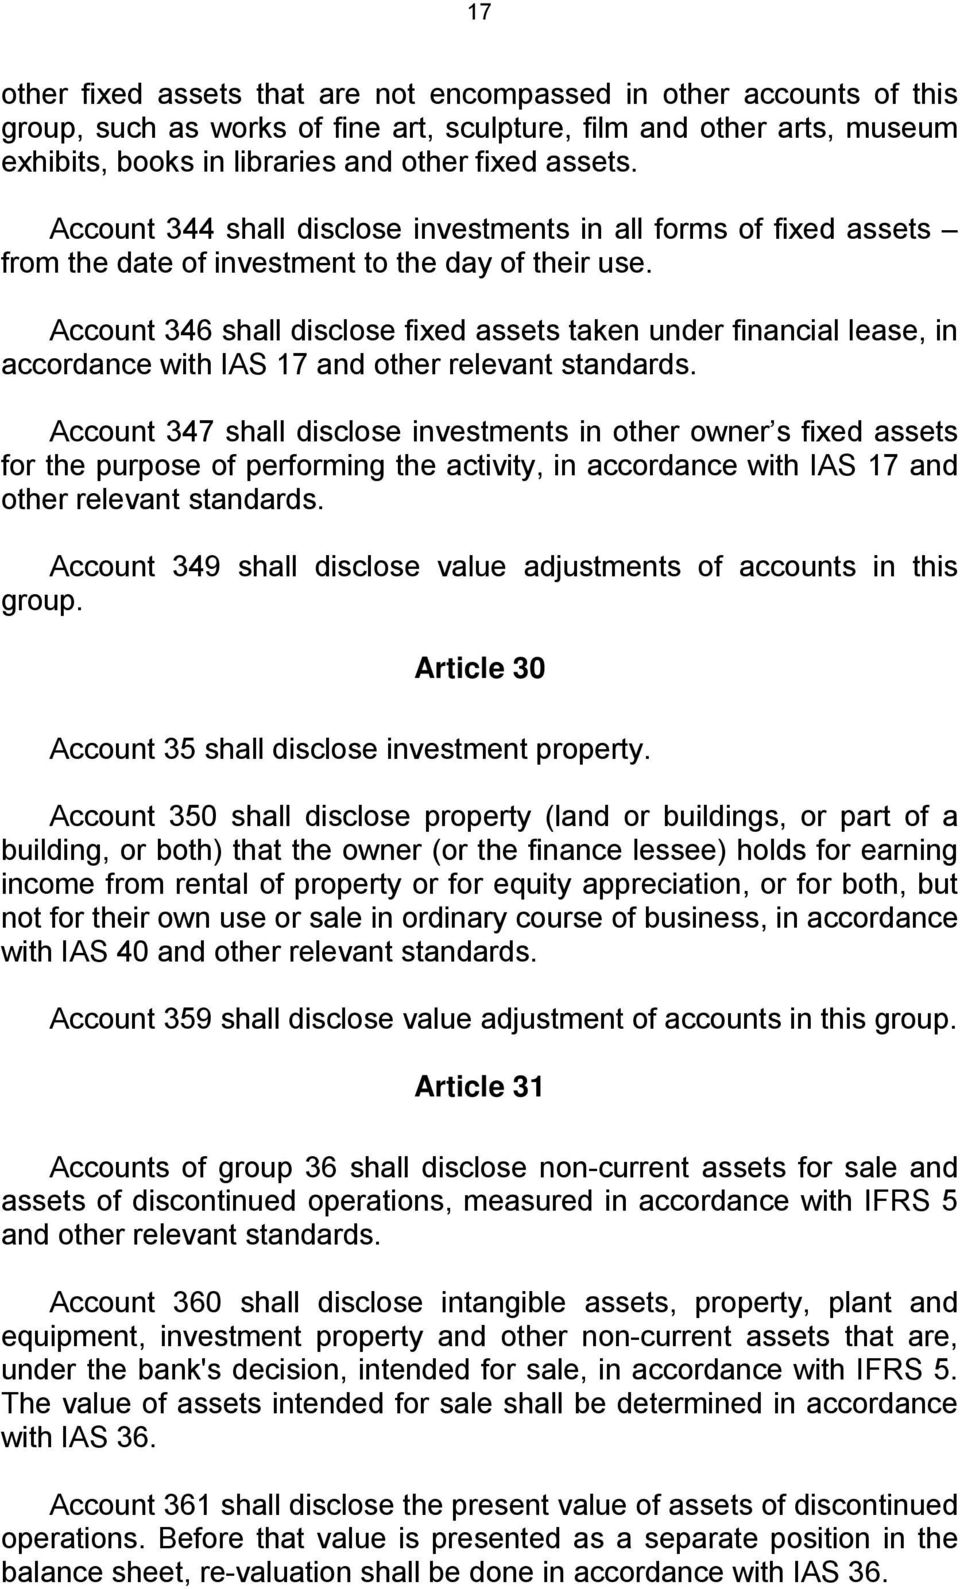 Account 346 shall disclose fixed assets taken under financial lease, in accordance with IAS 17 and other relevant standards.